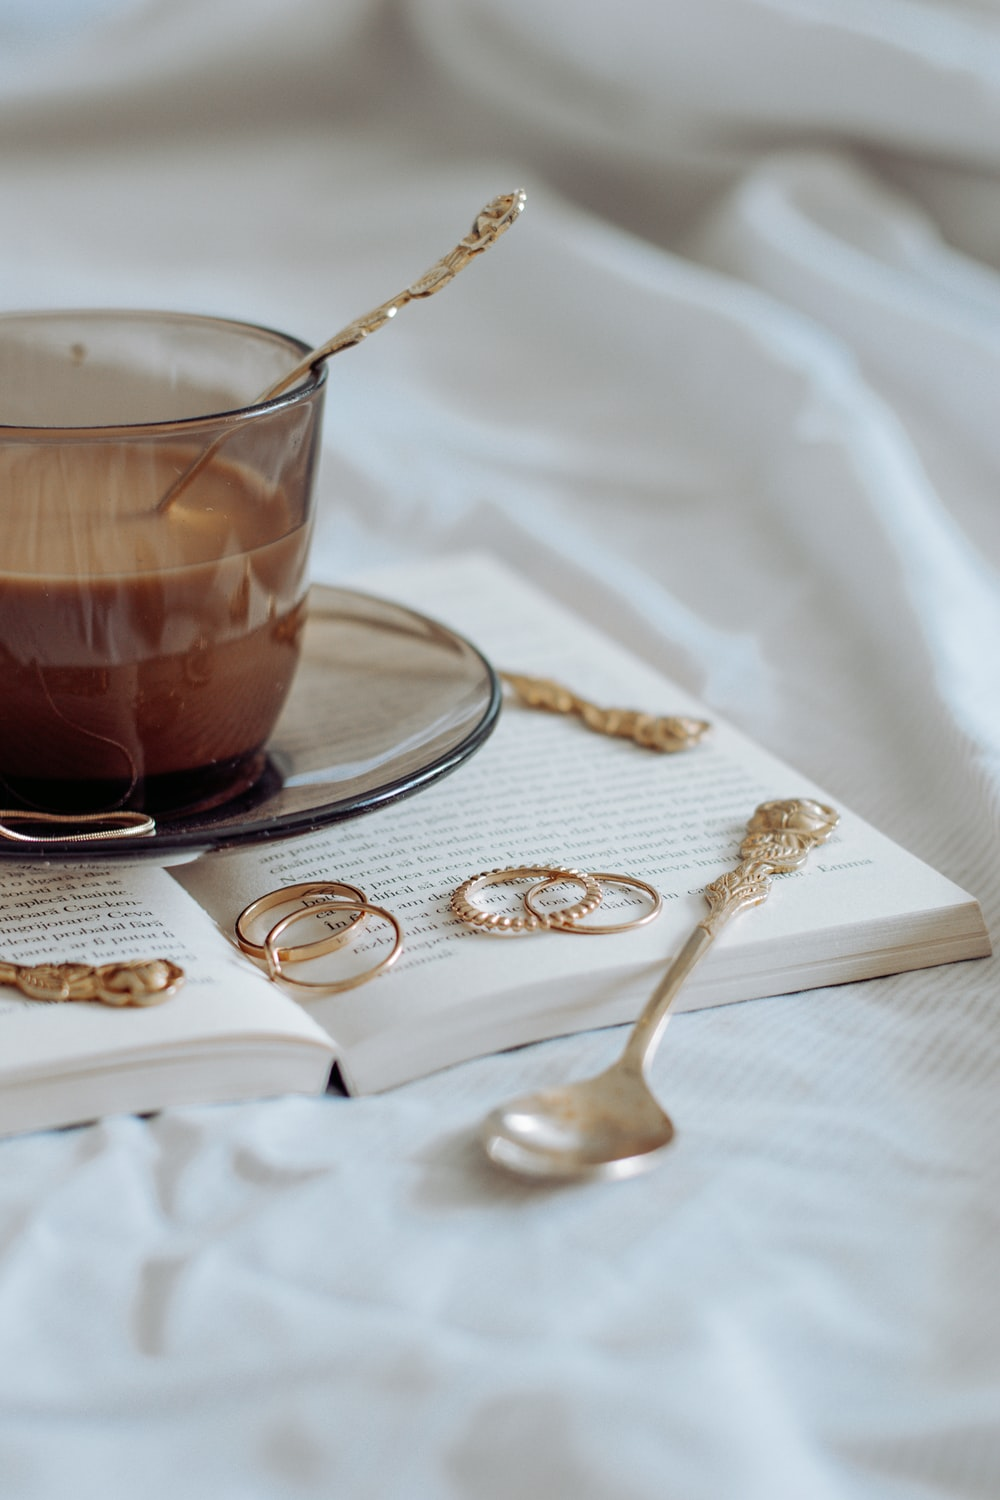 clear glass teacup on saucer with silver spoon